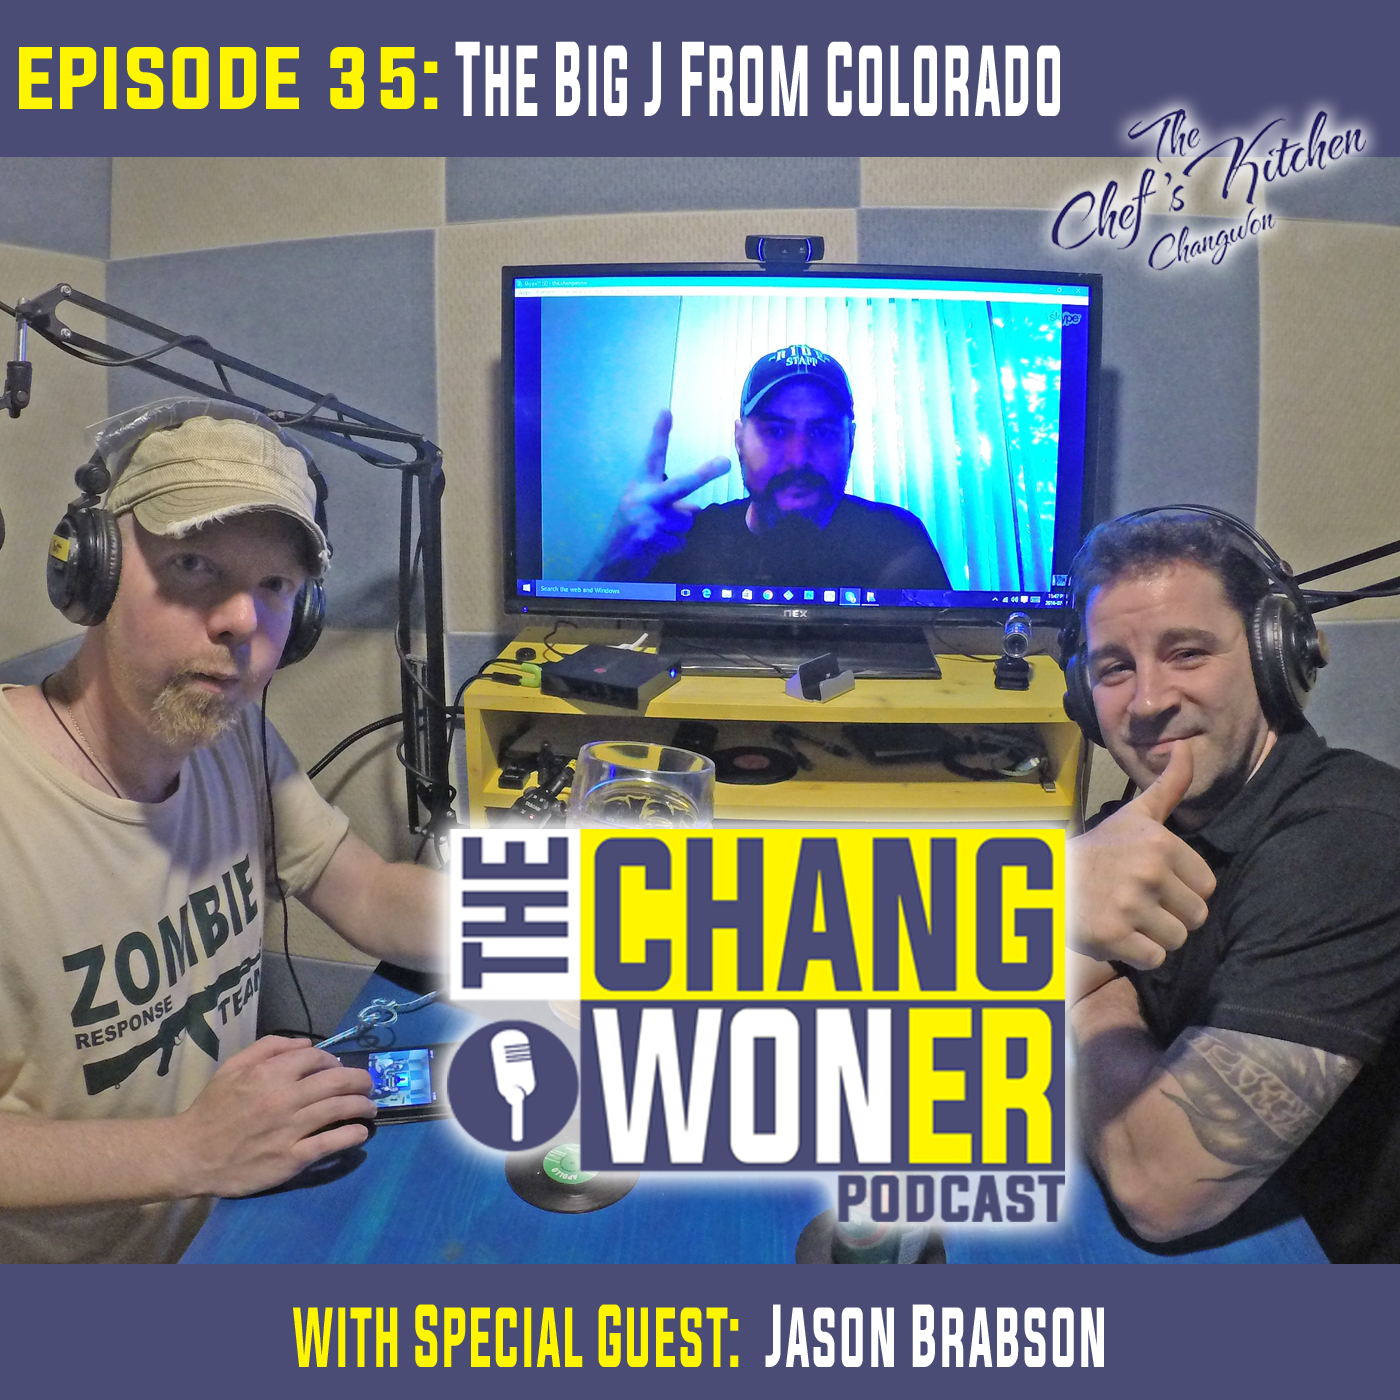 Artwork for Adjusting to Life Back in USA After Years Living in South Korea. -guest Jason Brabson (Ep 35)